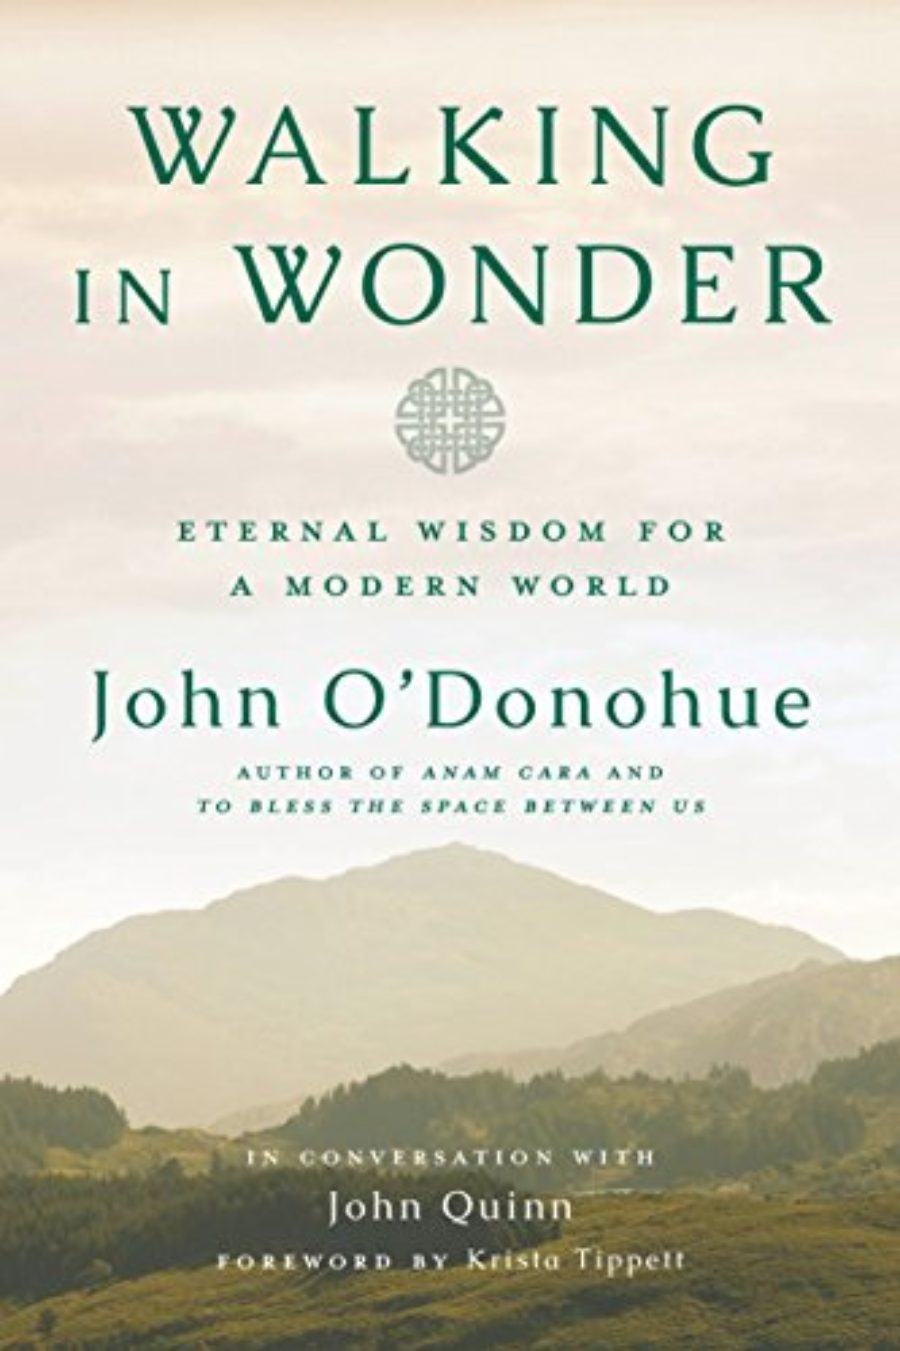 John O'Donohue — The Inner Landscape of Beauty - The On